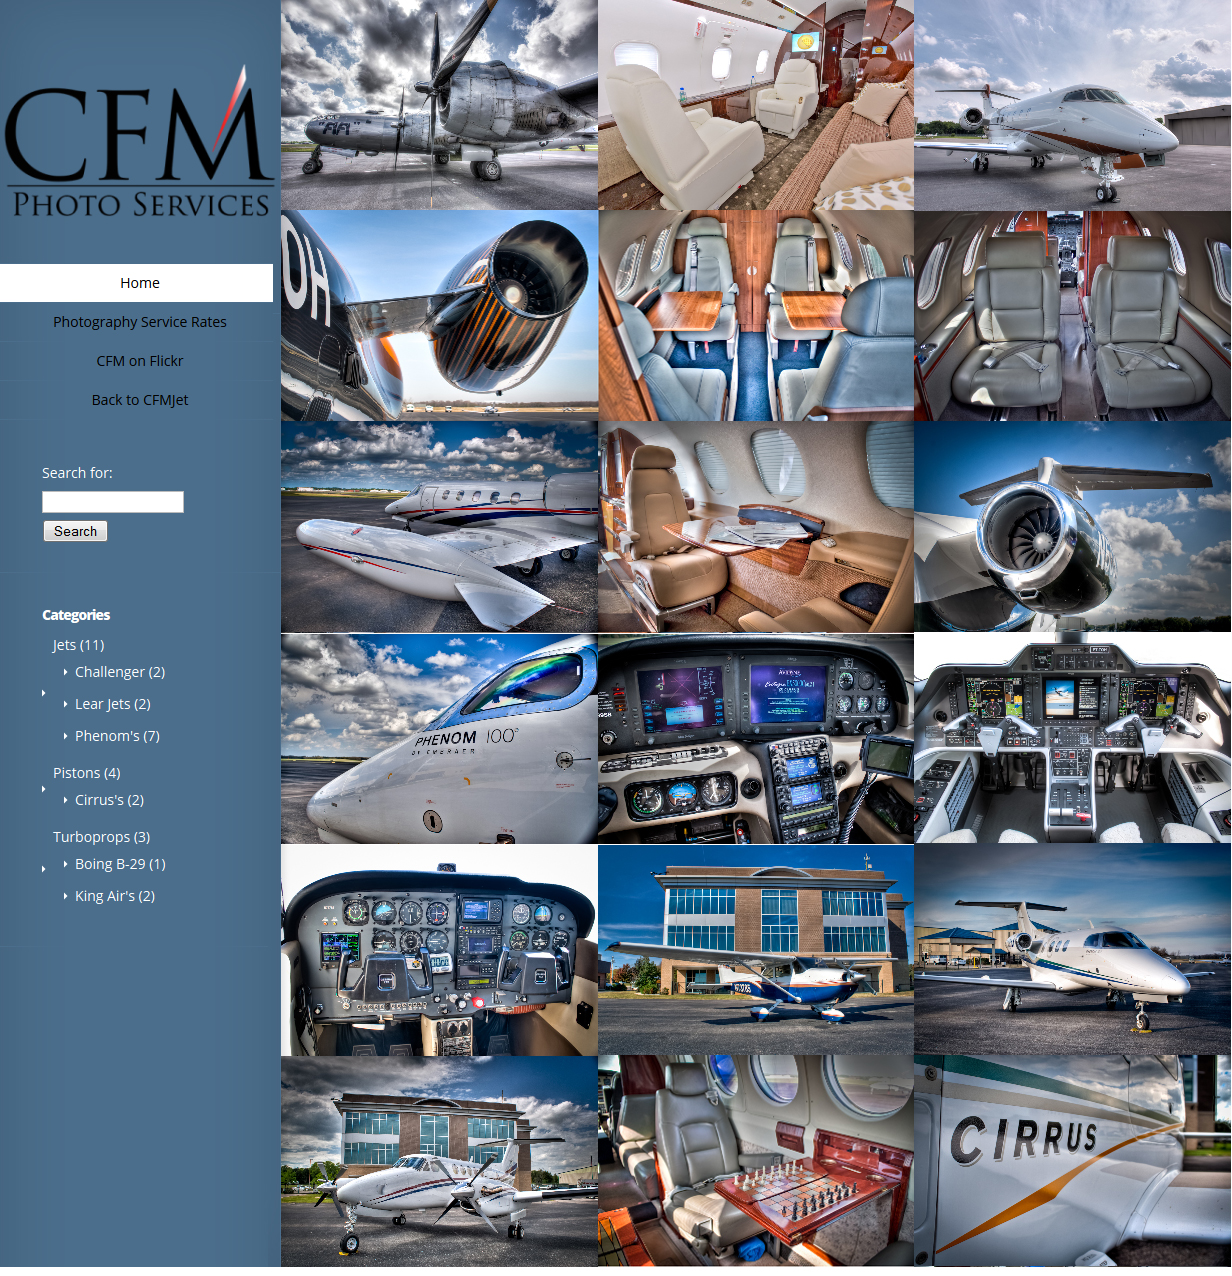 CFM Photo Services Home Page